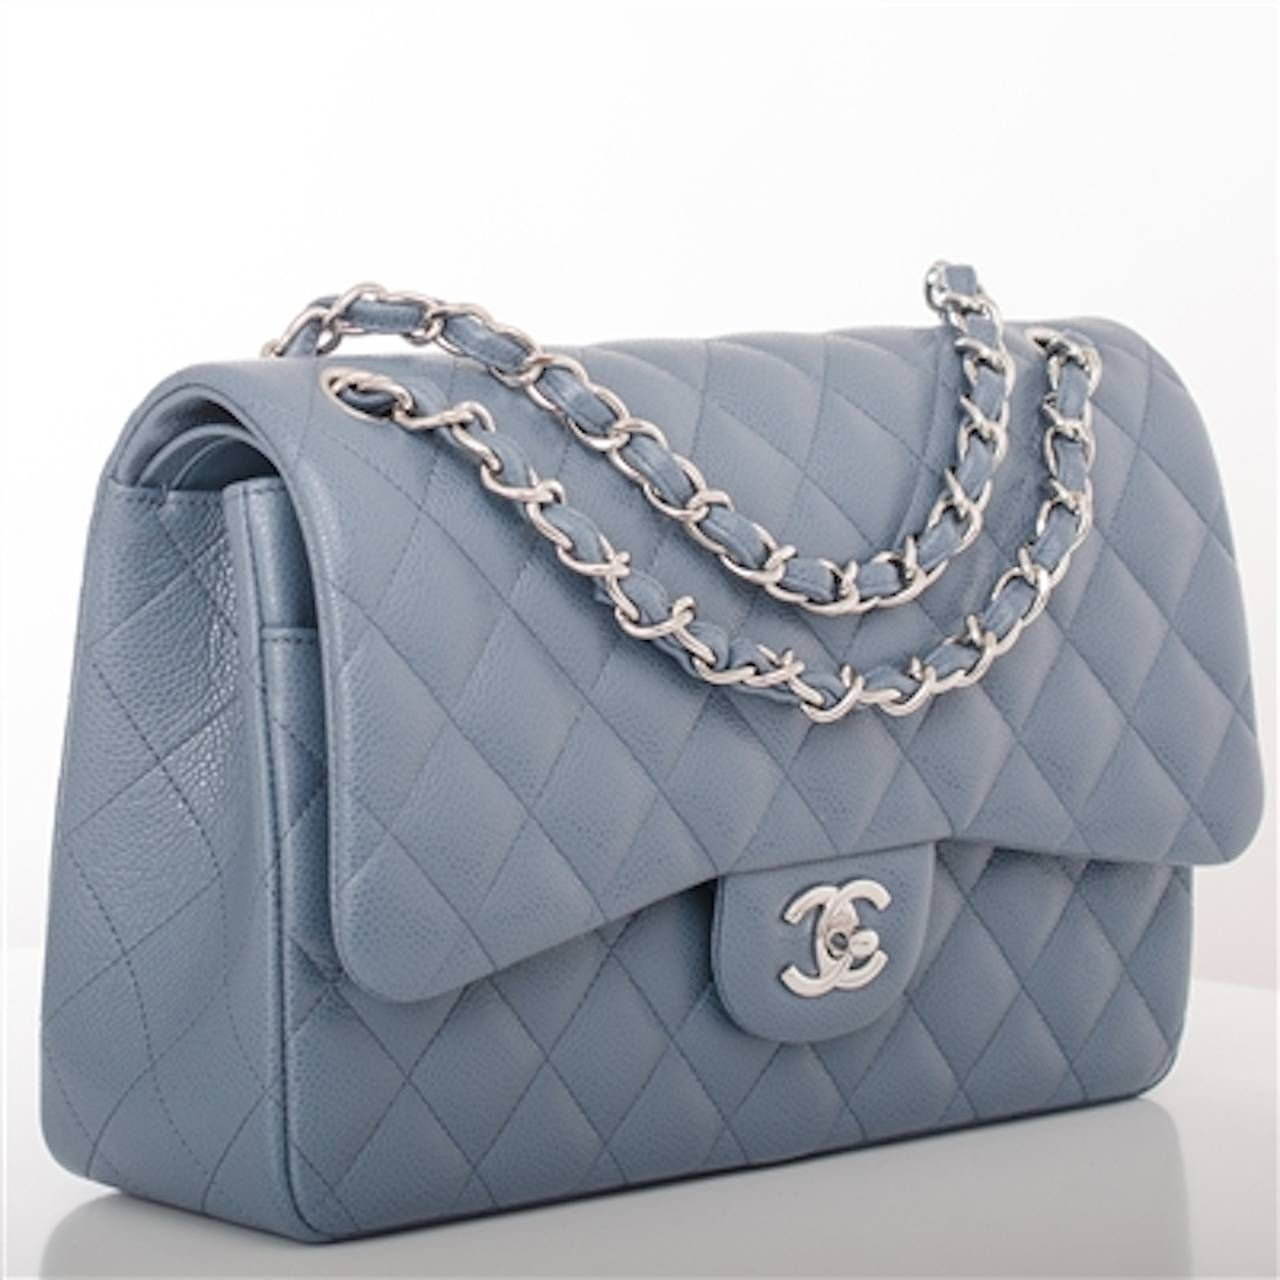 3798a590e492 Chanel Blue Quilted Caviar Jumbo Classic 2.55 Double Flap Bag ...